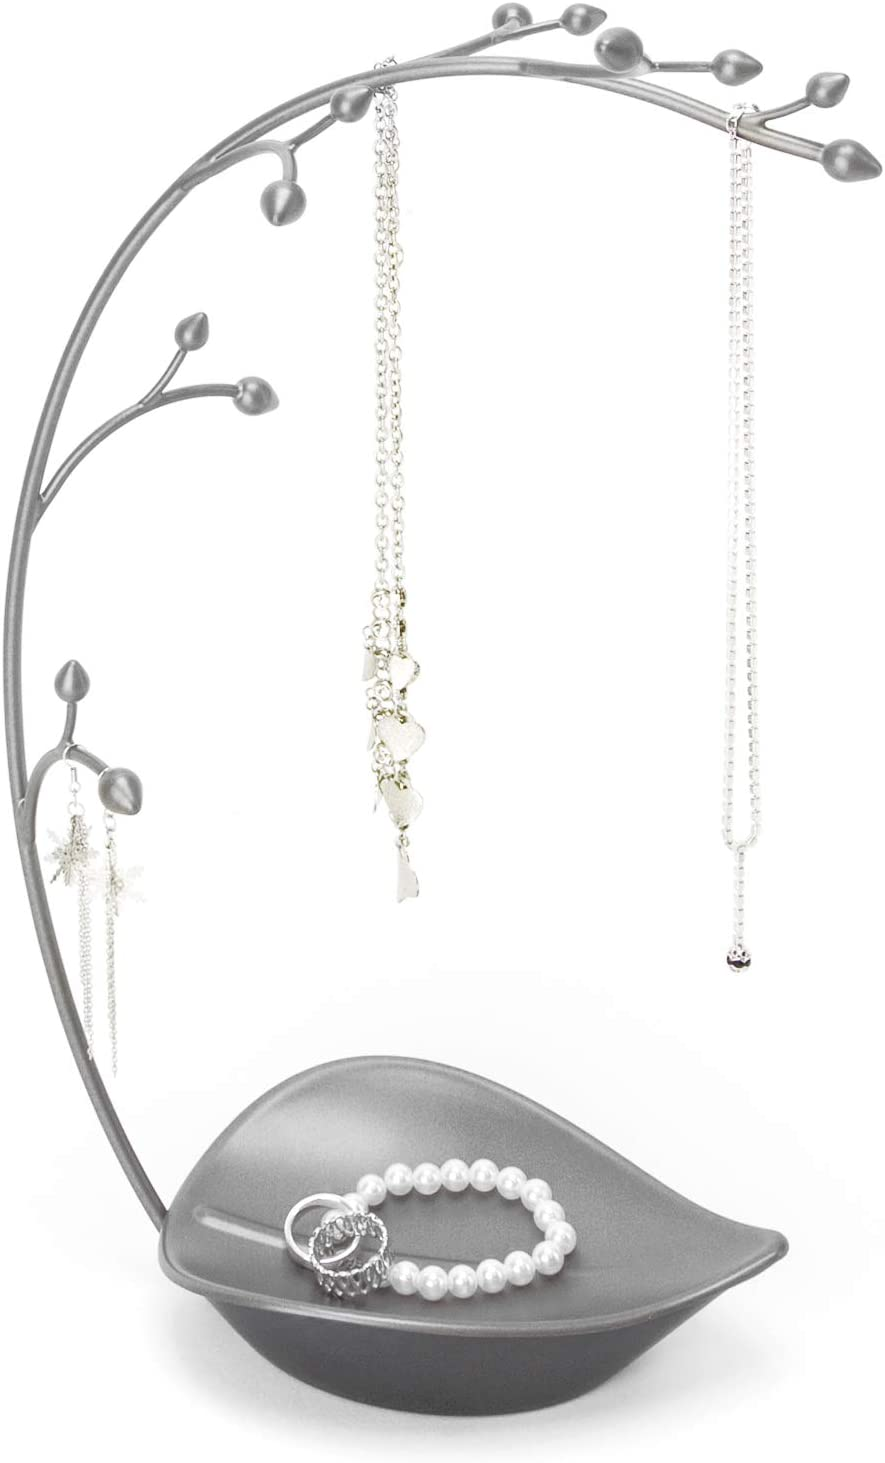 Umbra Orchid Jewelry Hanging Baum Stand - Multi-Functional Necklace Metal Holder Display Organizer Rack mit ein Ring Dish Tray - Great für Organization - können sein Used wie Decor, Dining Zimmer Centerpiece